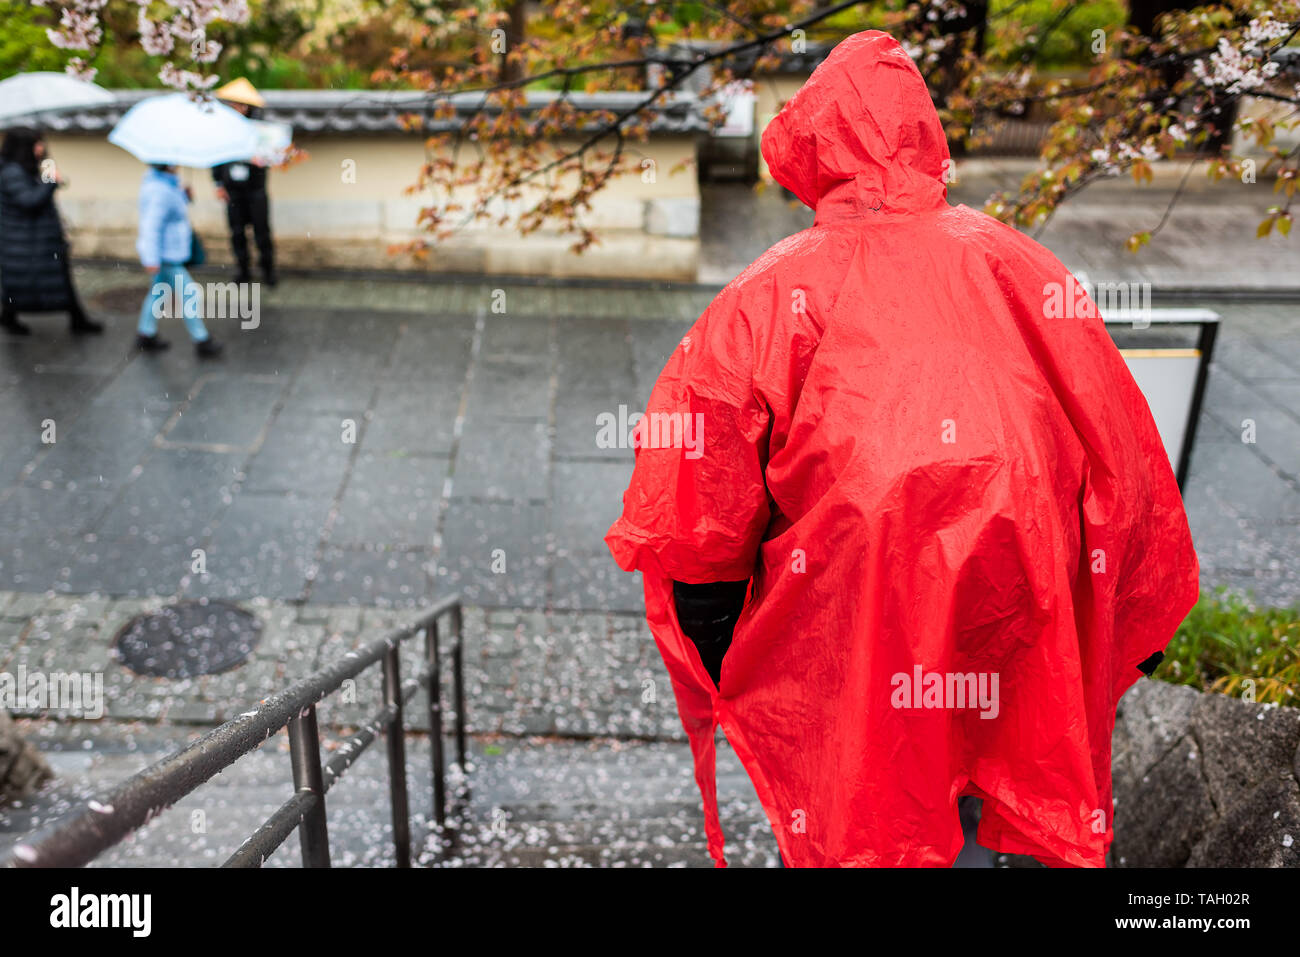 Man in red poncho walking down steps during rainy day on street road sidewalk near Gion and fallen cherry blossom flower petals - Stock Image